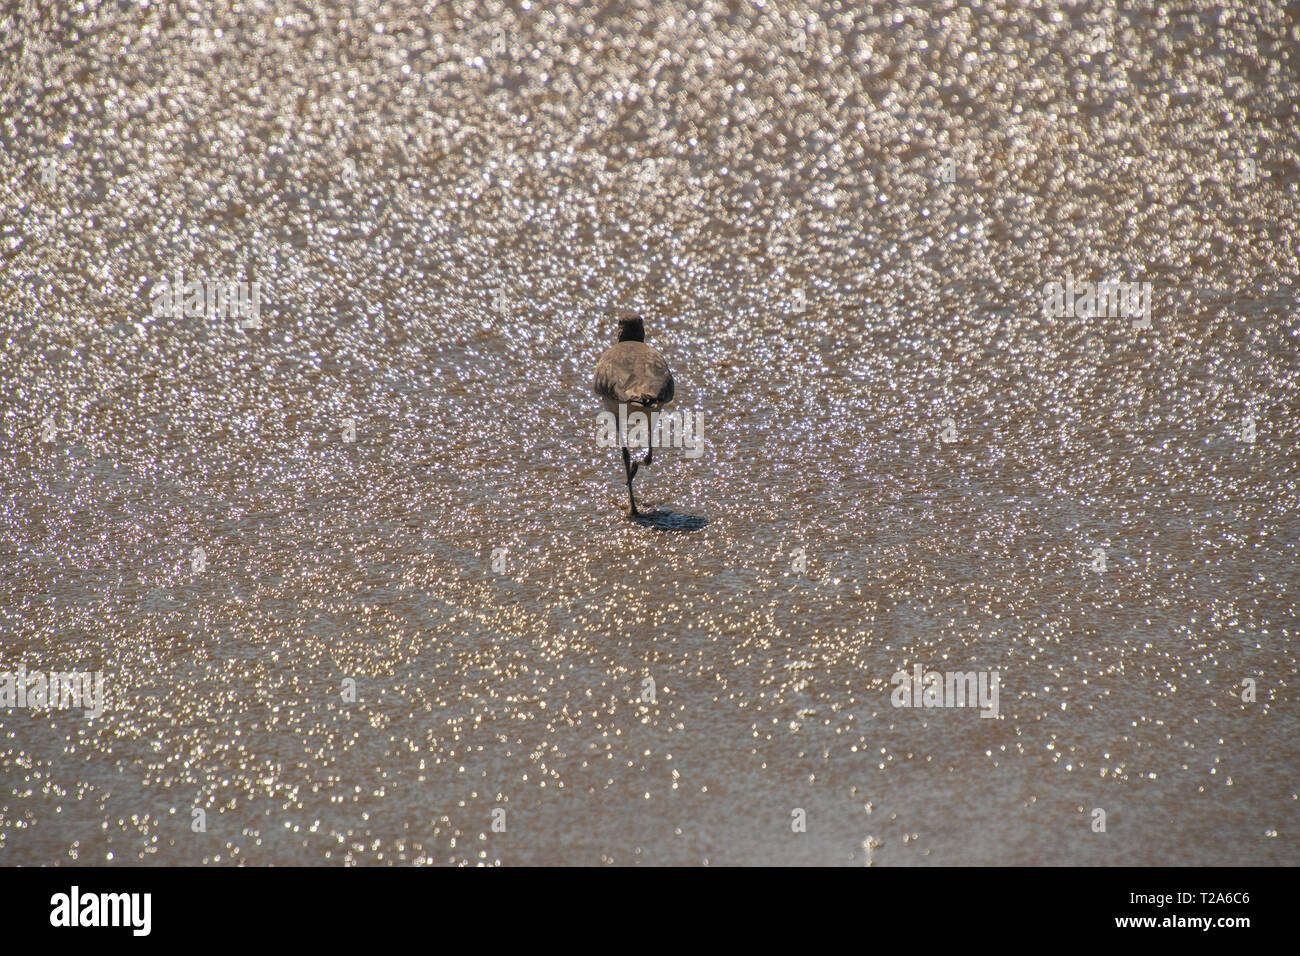 Sandpiper bird walking away in shallow water of the ocean on a beach Stock Photo